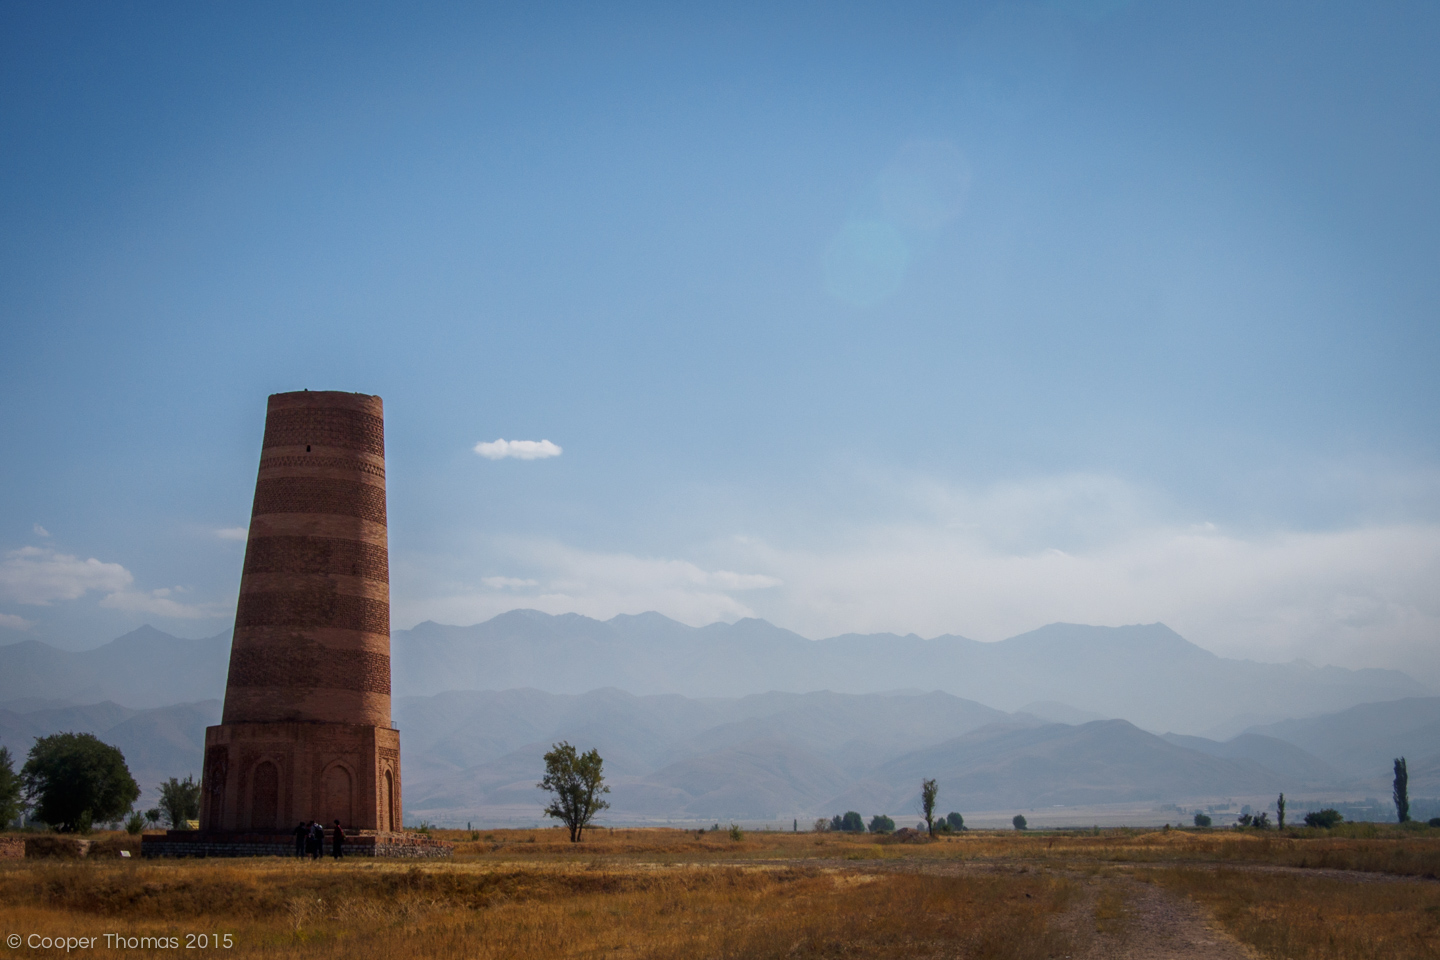 The tower in October. Haze obscures the mountains to the south